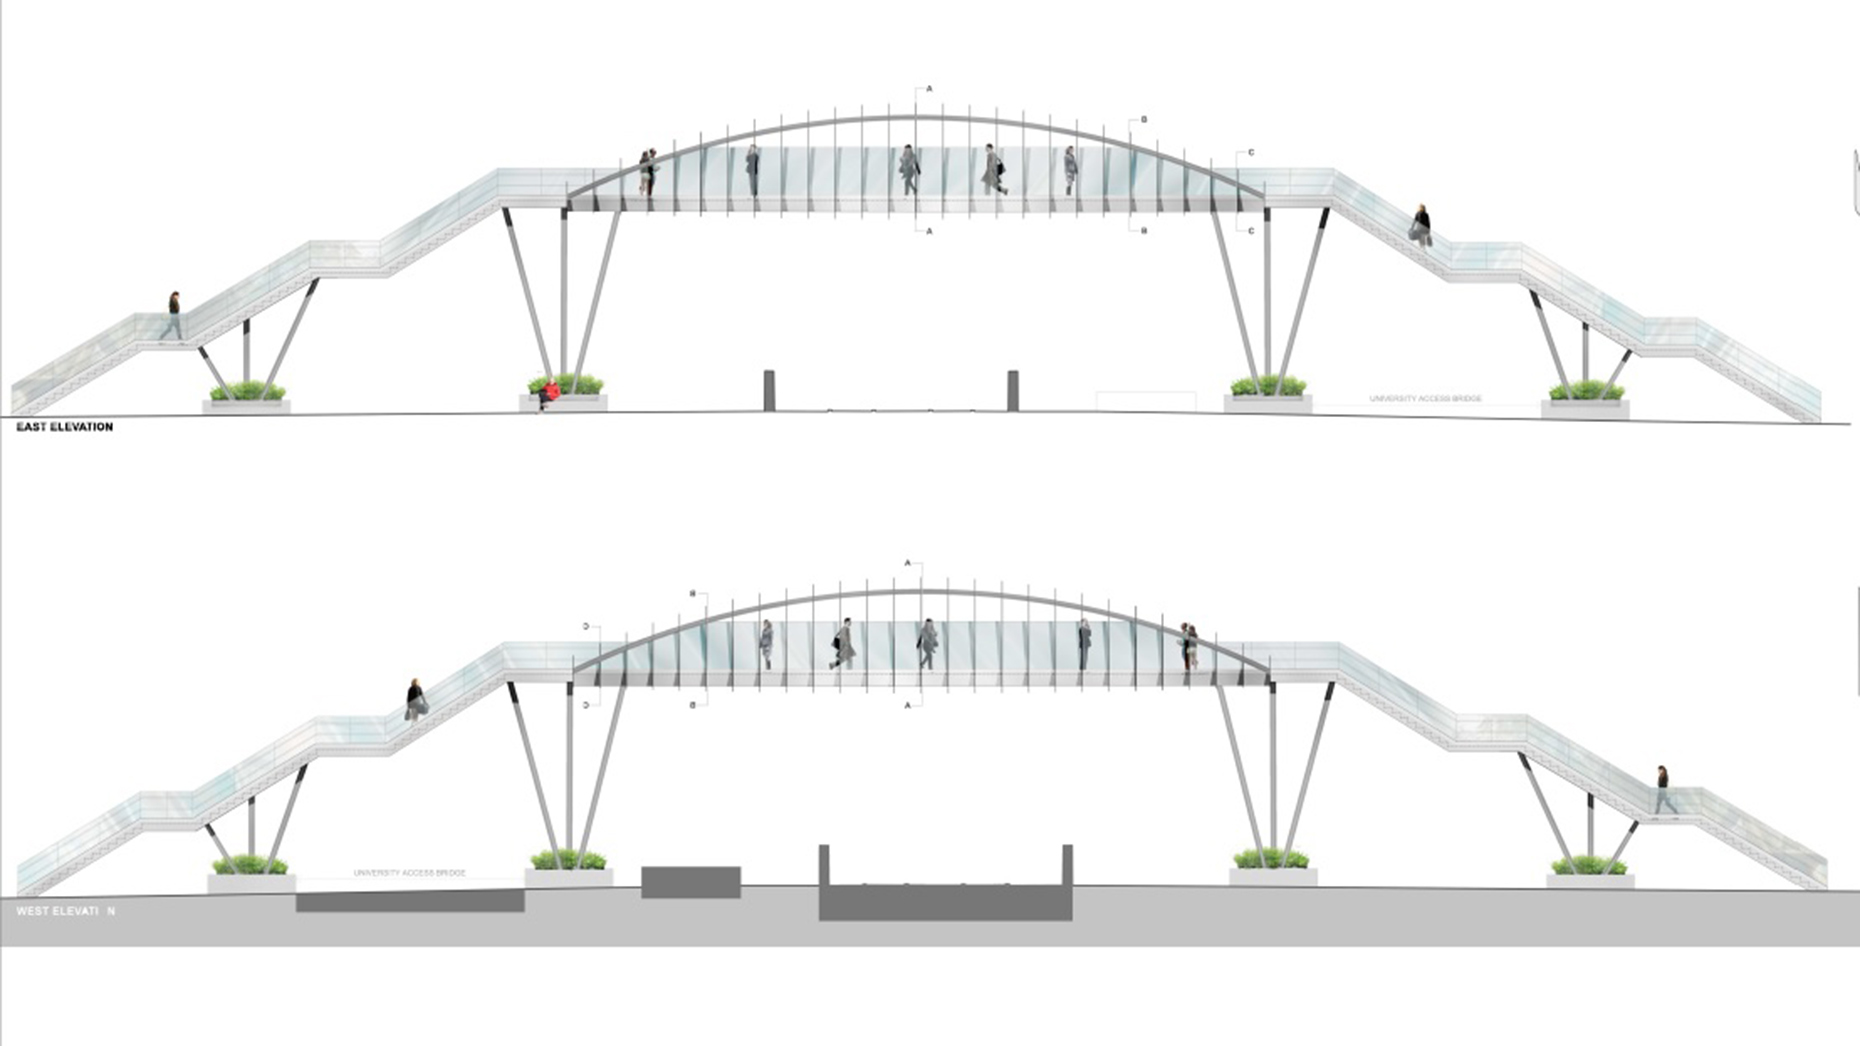 Brayford footbridge back on the table as new designs unveiled